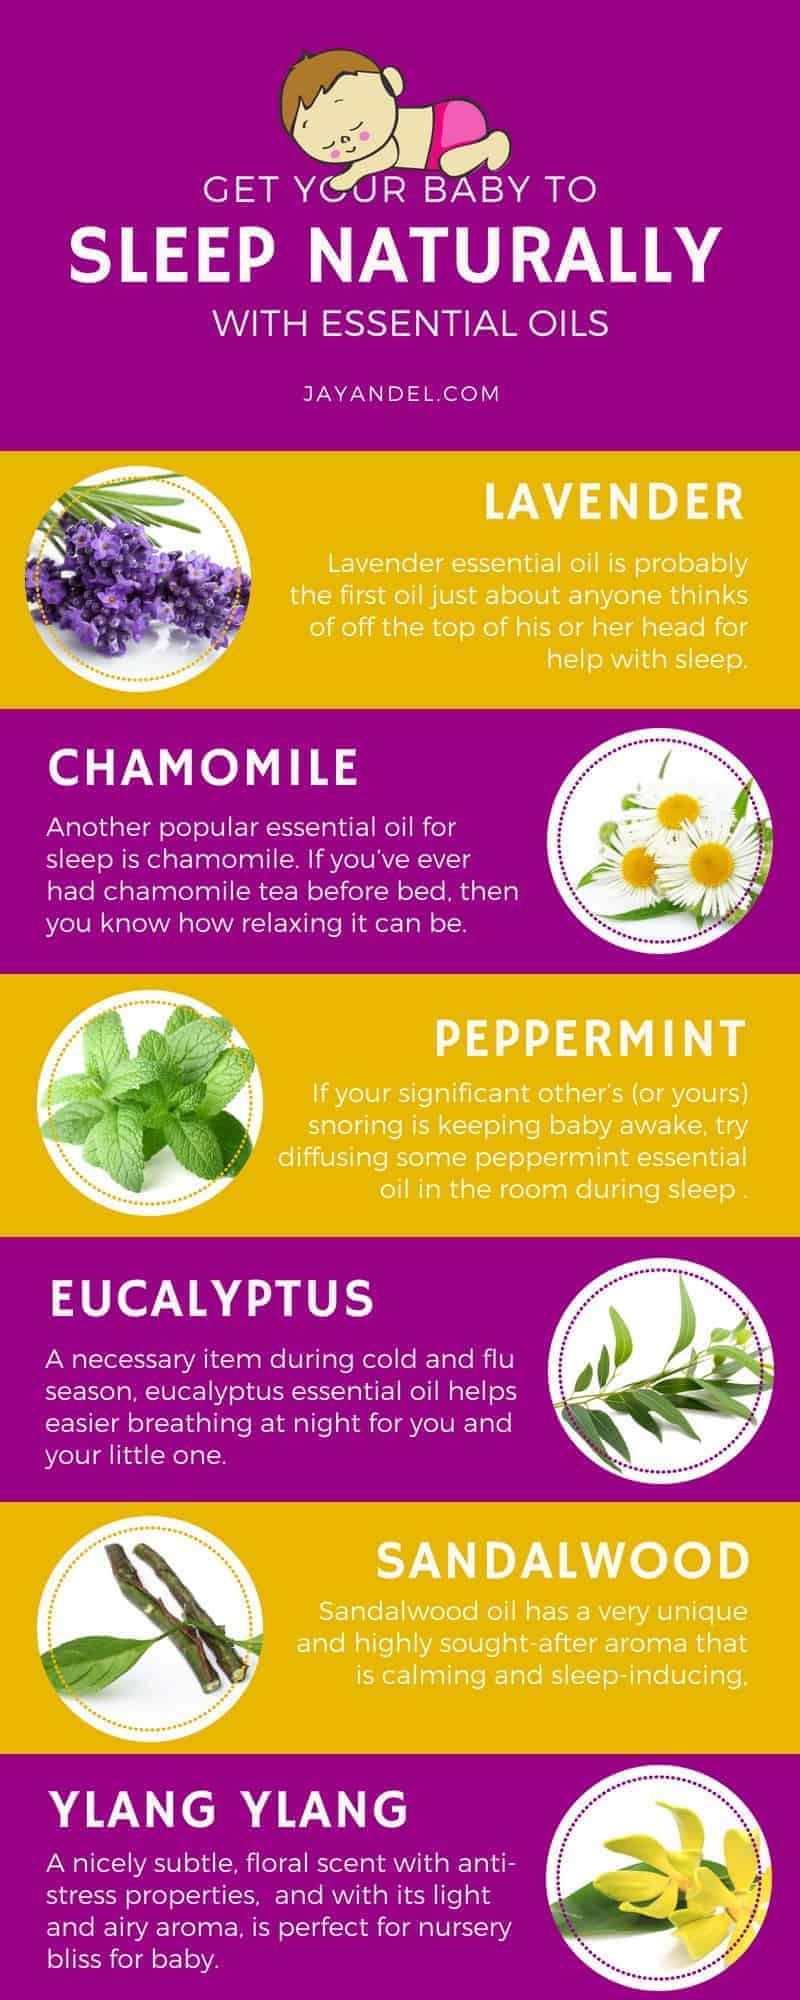 essential oils believed to work well for sleepy babies and their parents.